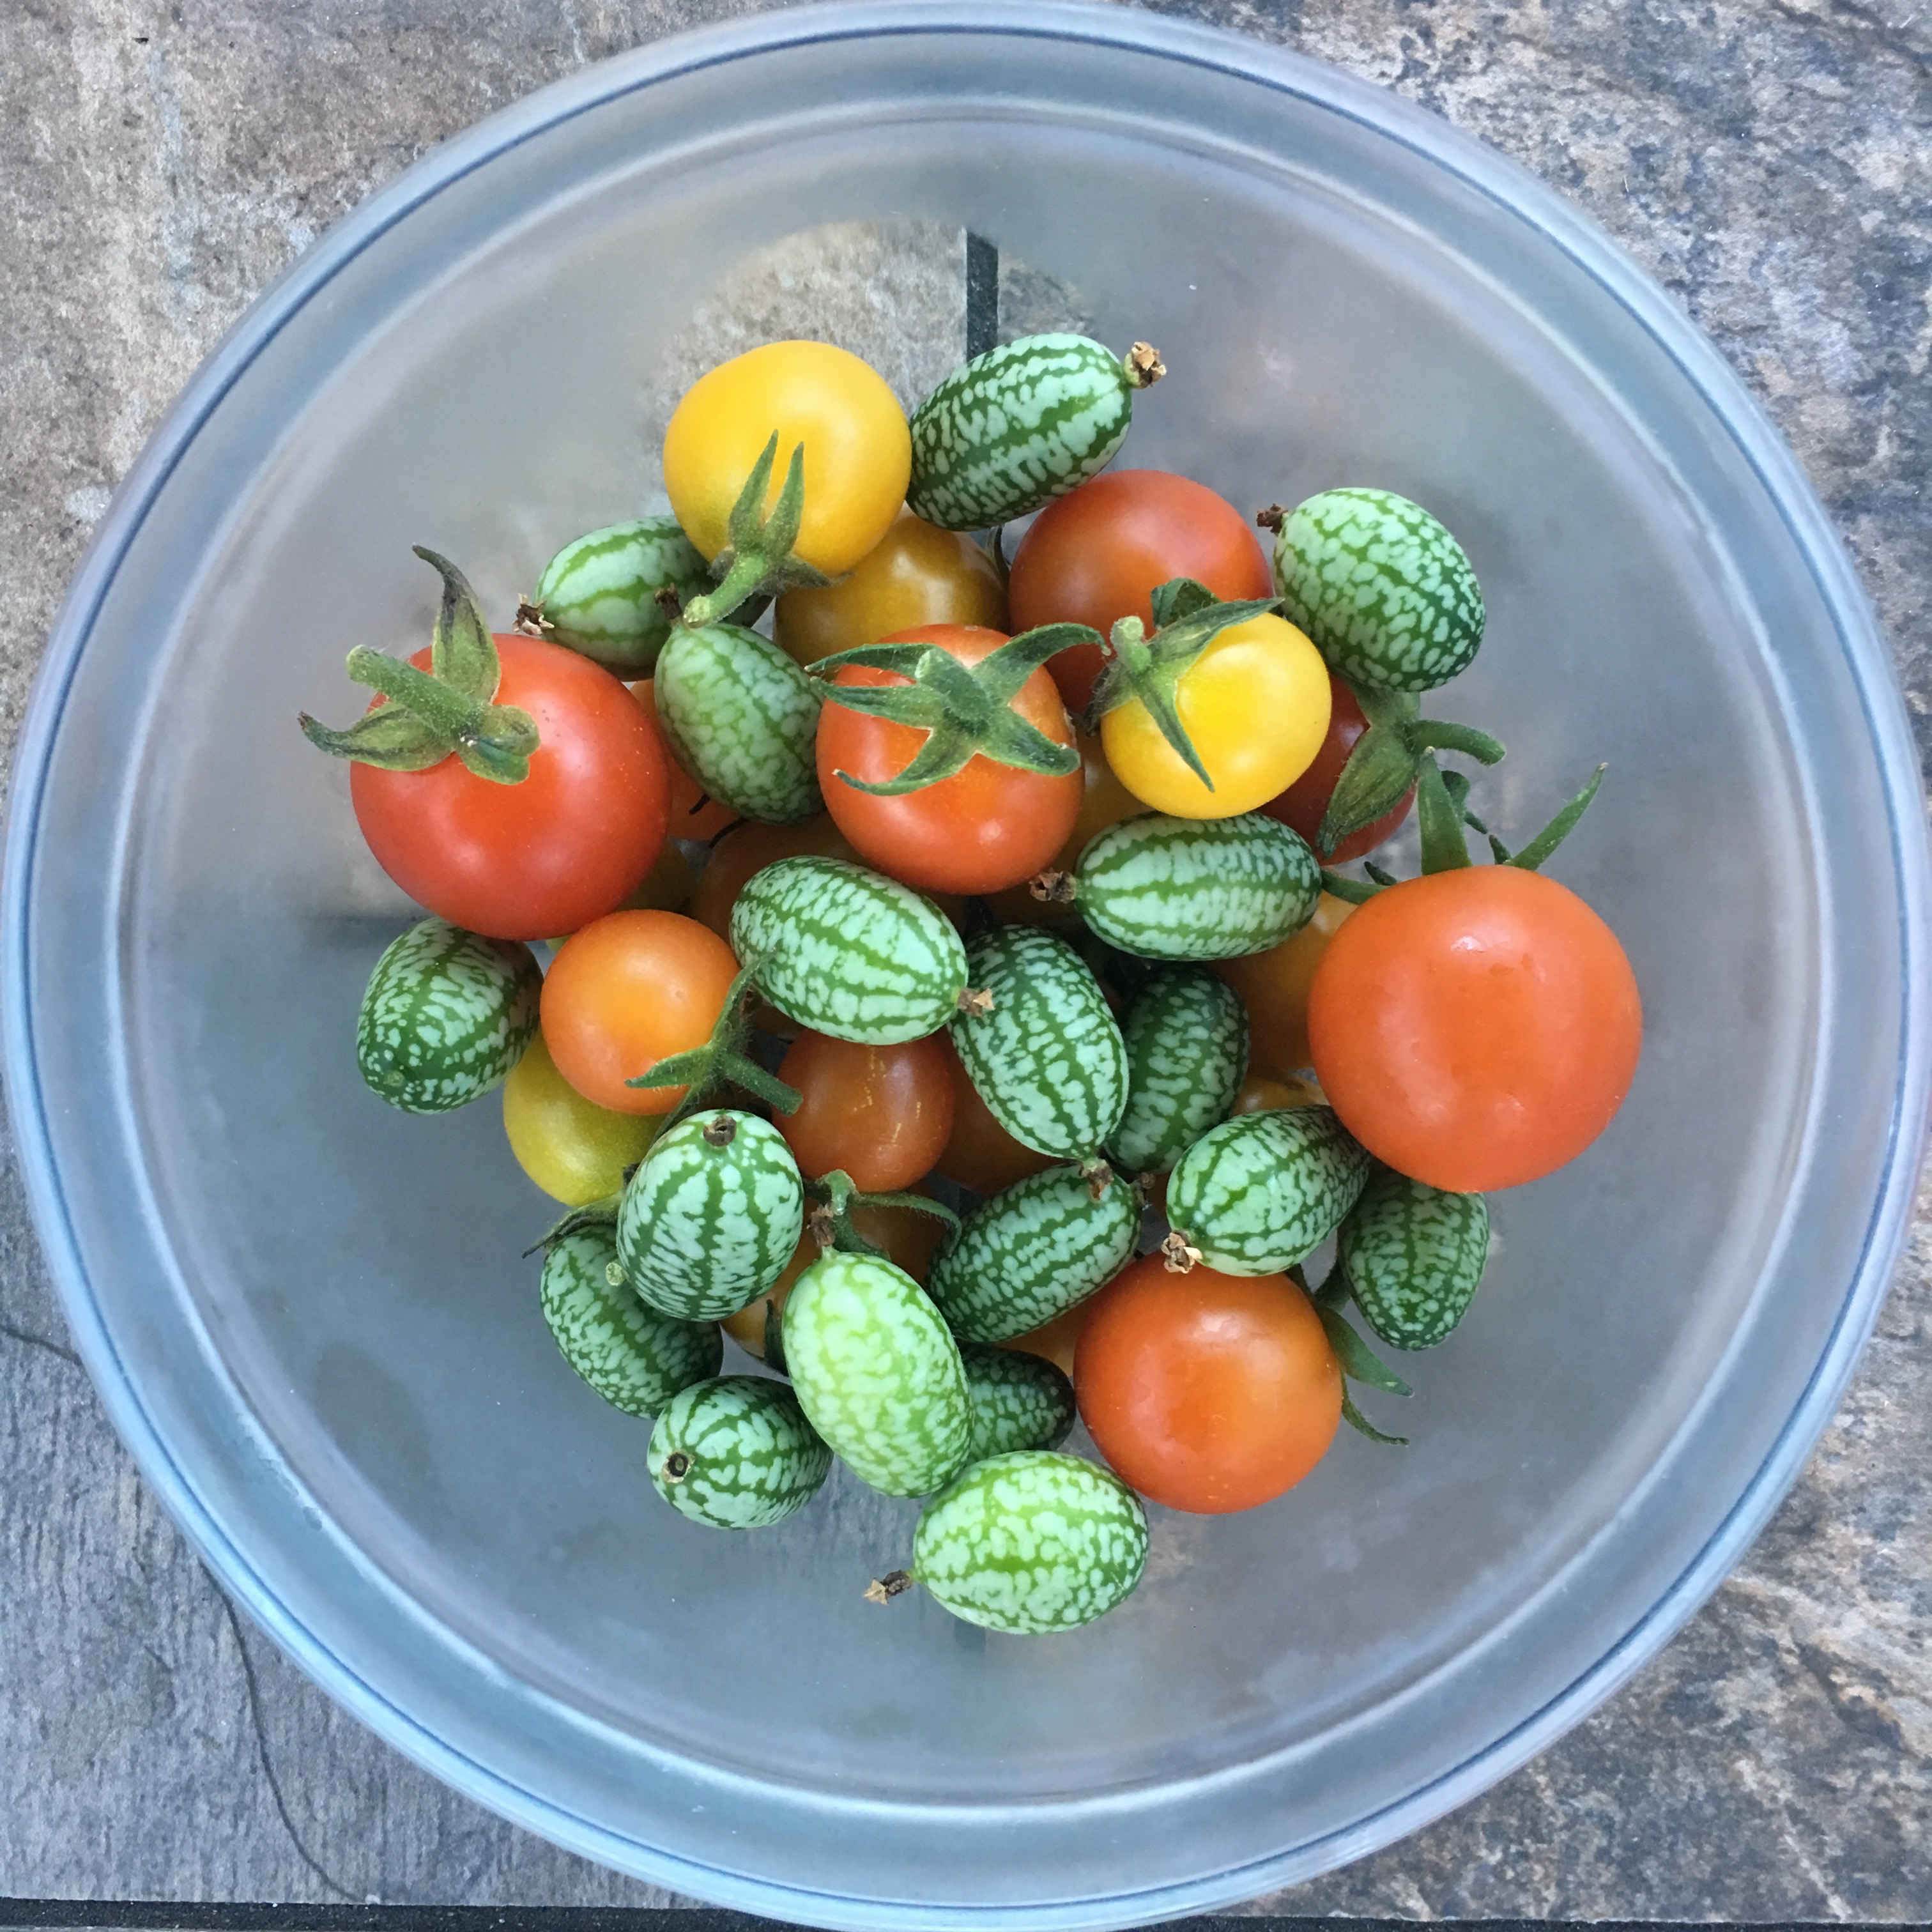 Tomatoes & Cucamelons